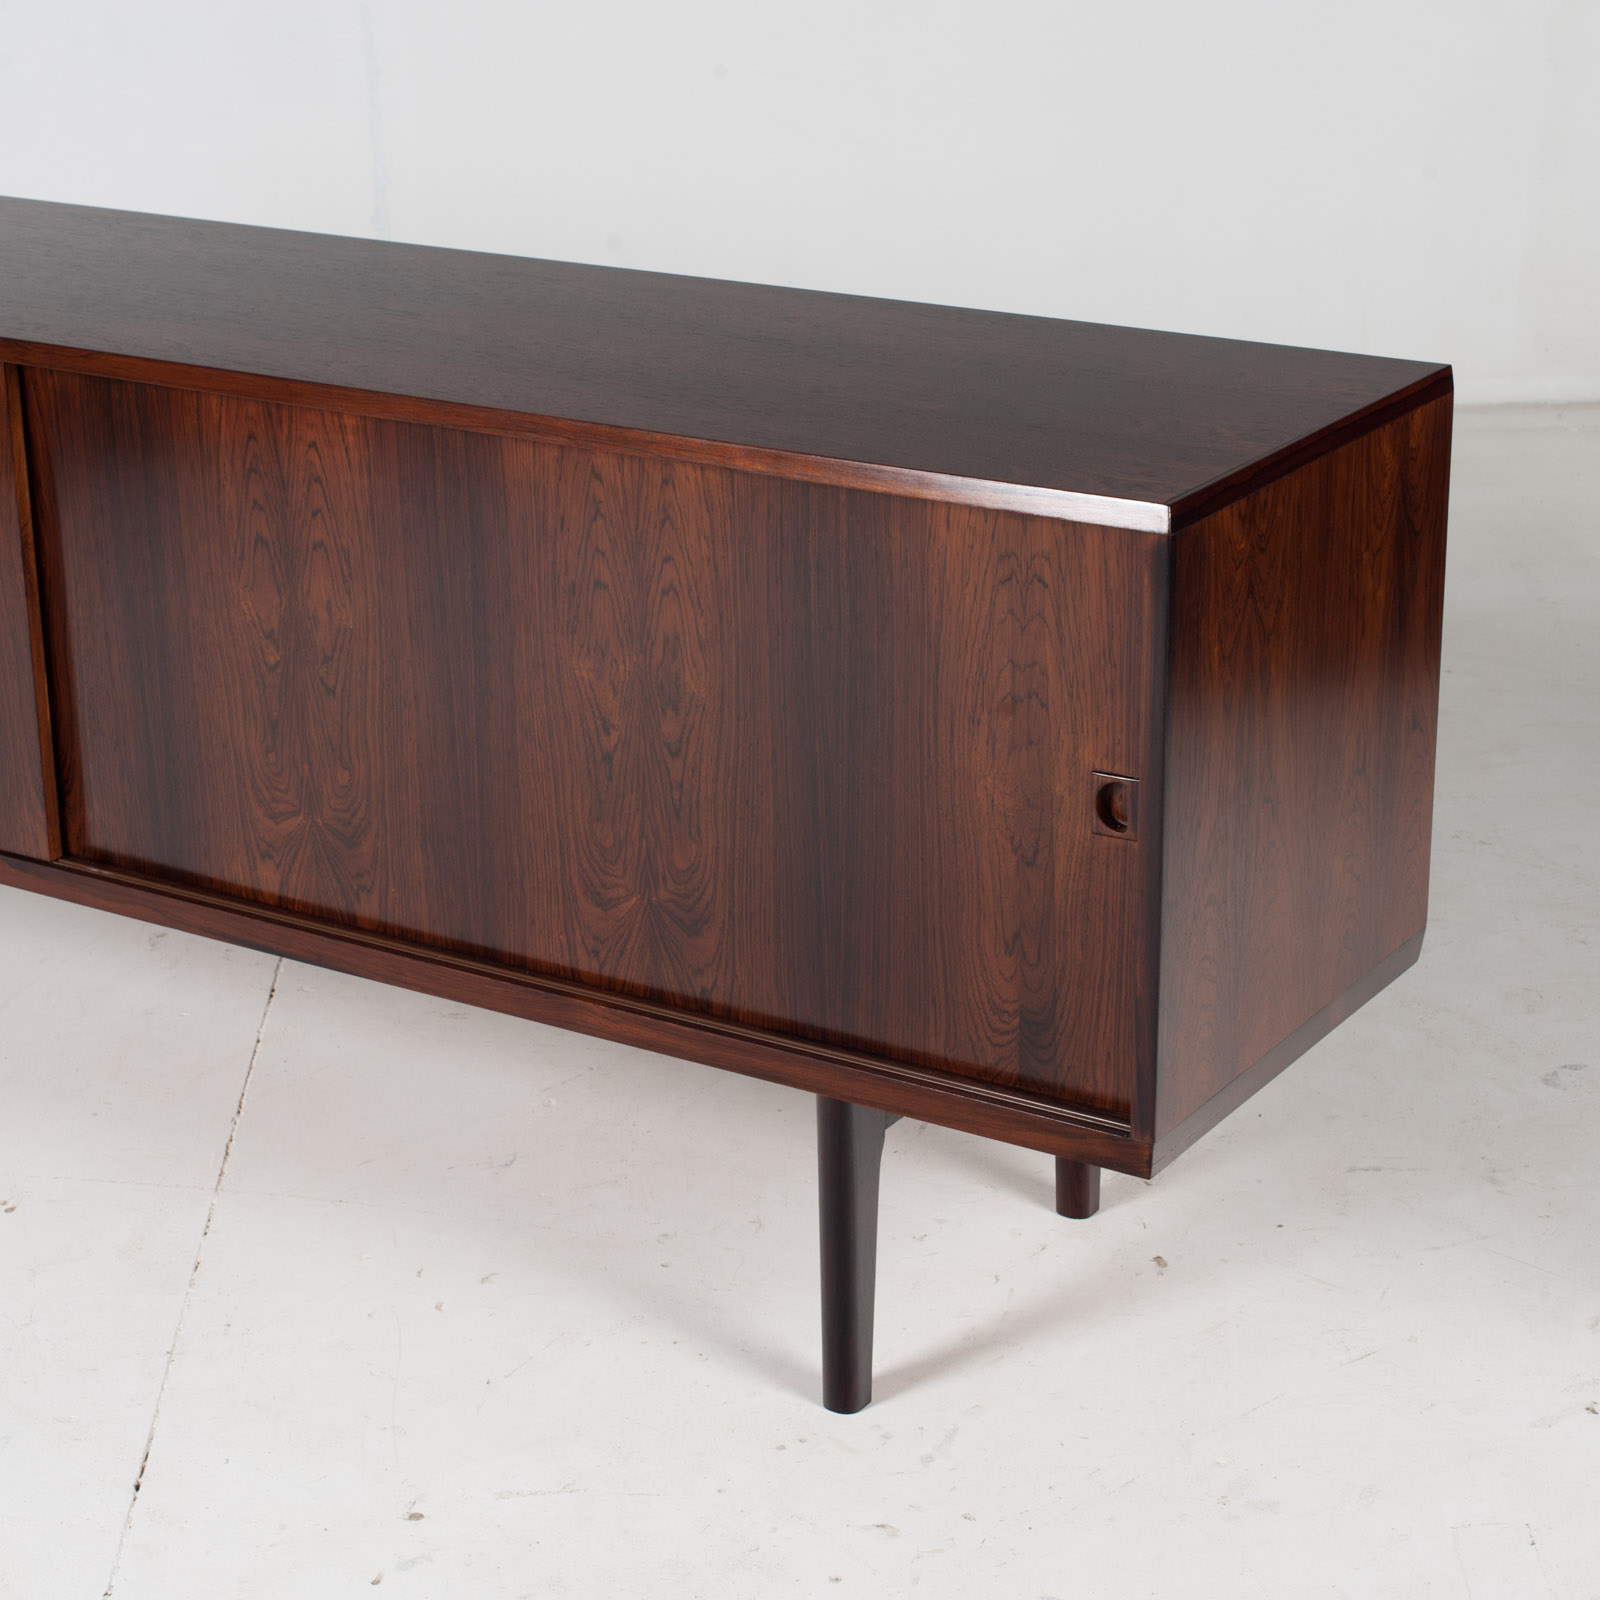 Sideboard In Rosewood With Oak Interior For Brouer Furniture, 1960s, Denmark10